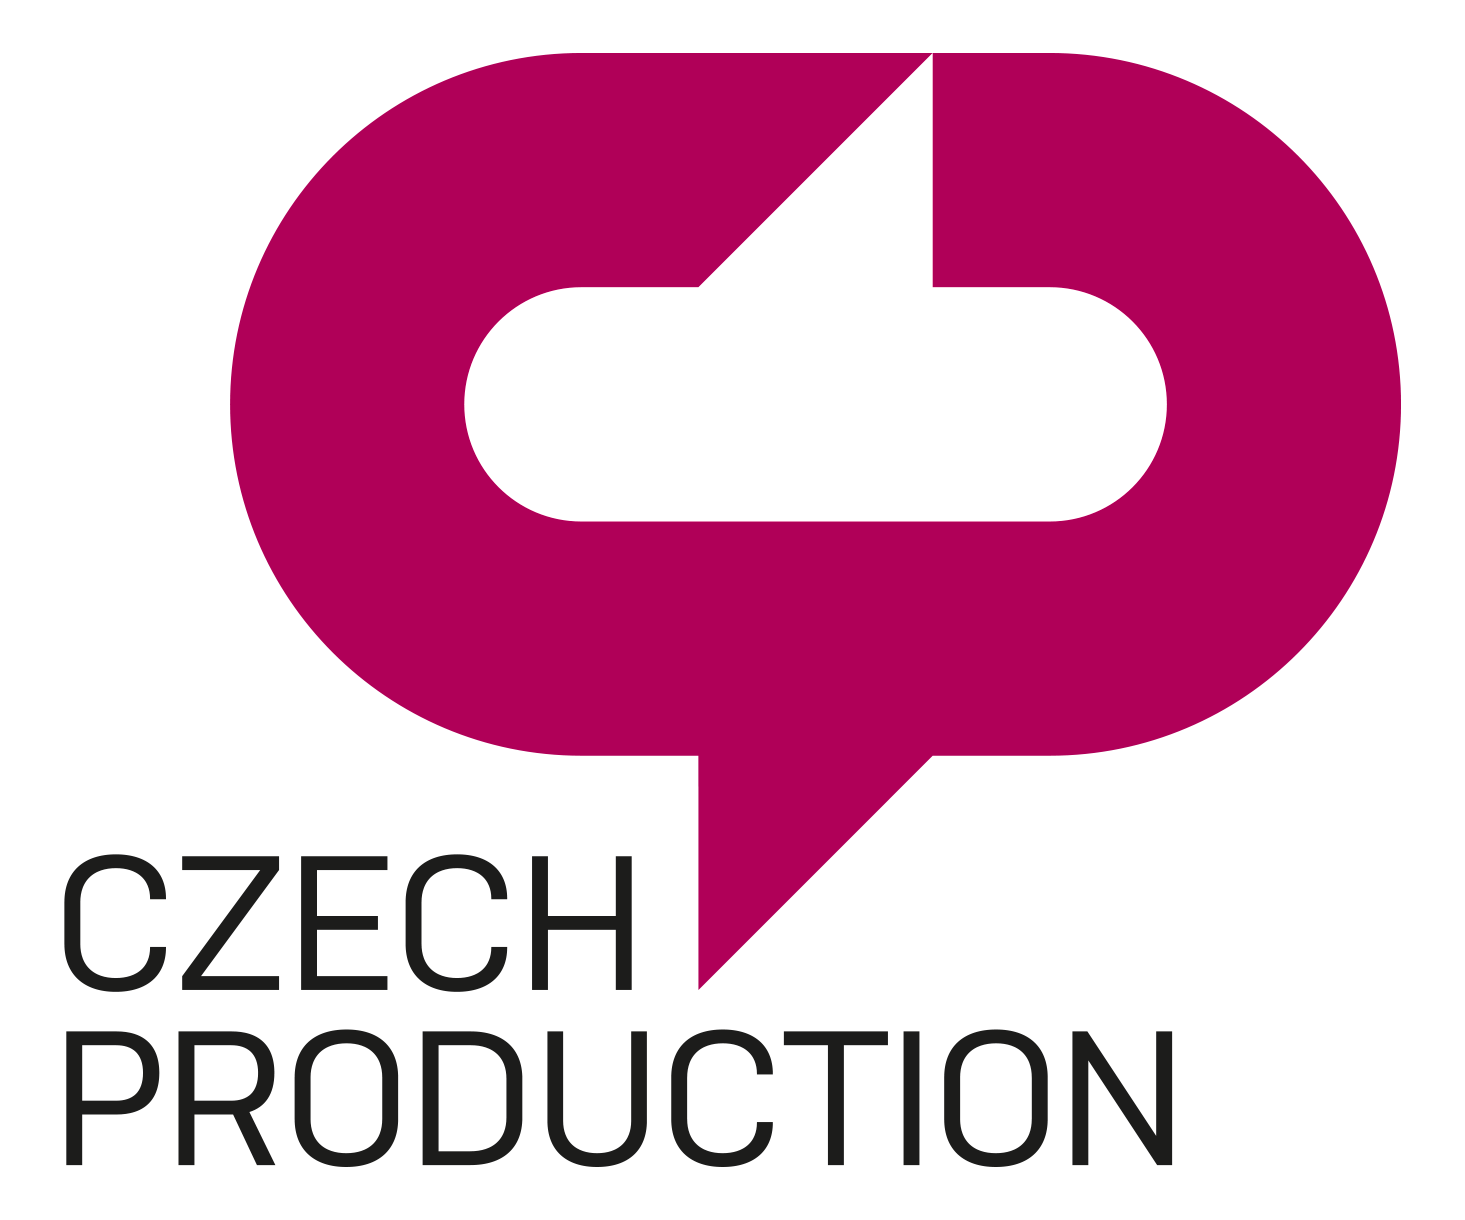 Czech production logo cp 1